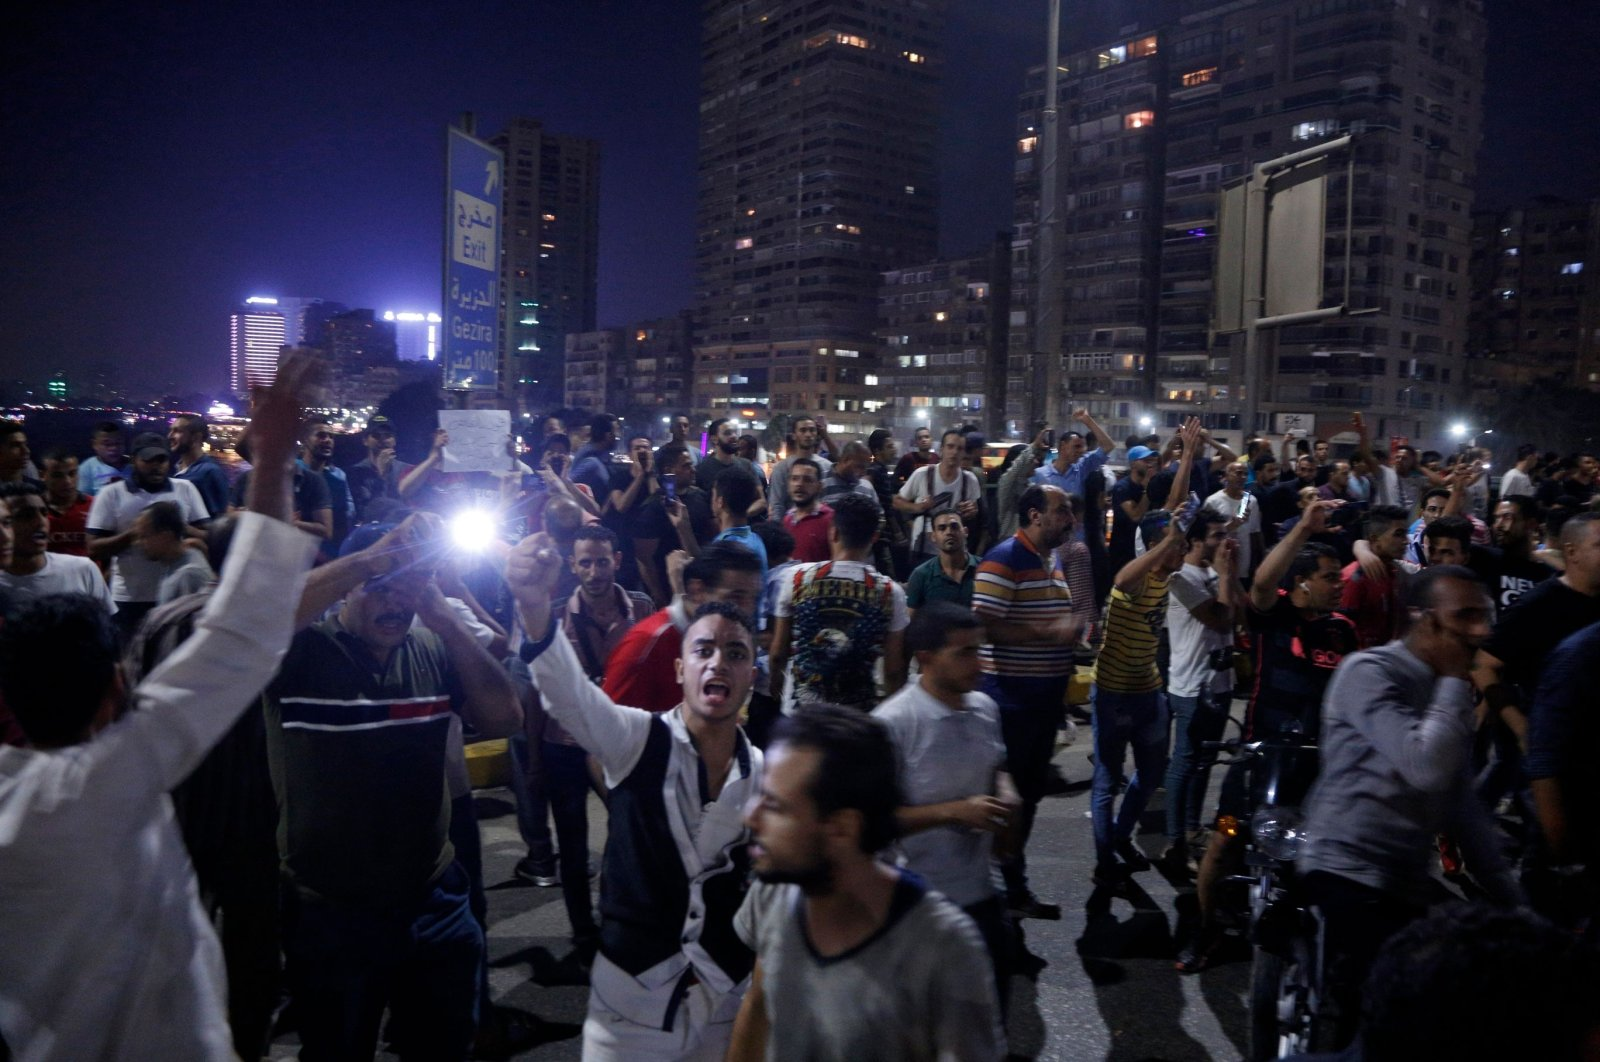 Egyptian protesters shout slogans as they take part in a demonstration calling for the removal of President Abdel-Fattah el-Sissi, Sep. 22, 2019. (AFP Photo)